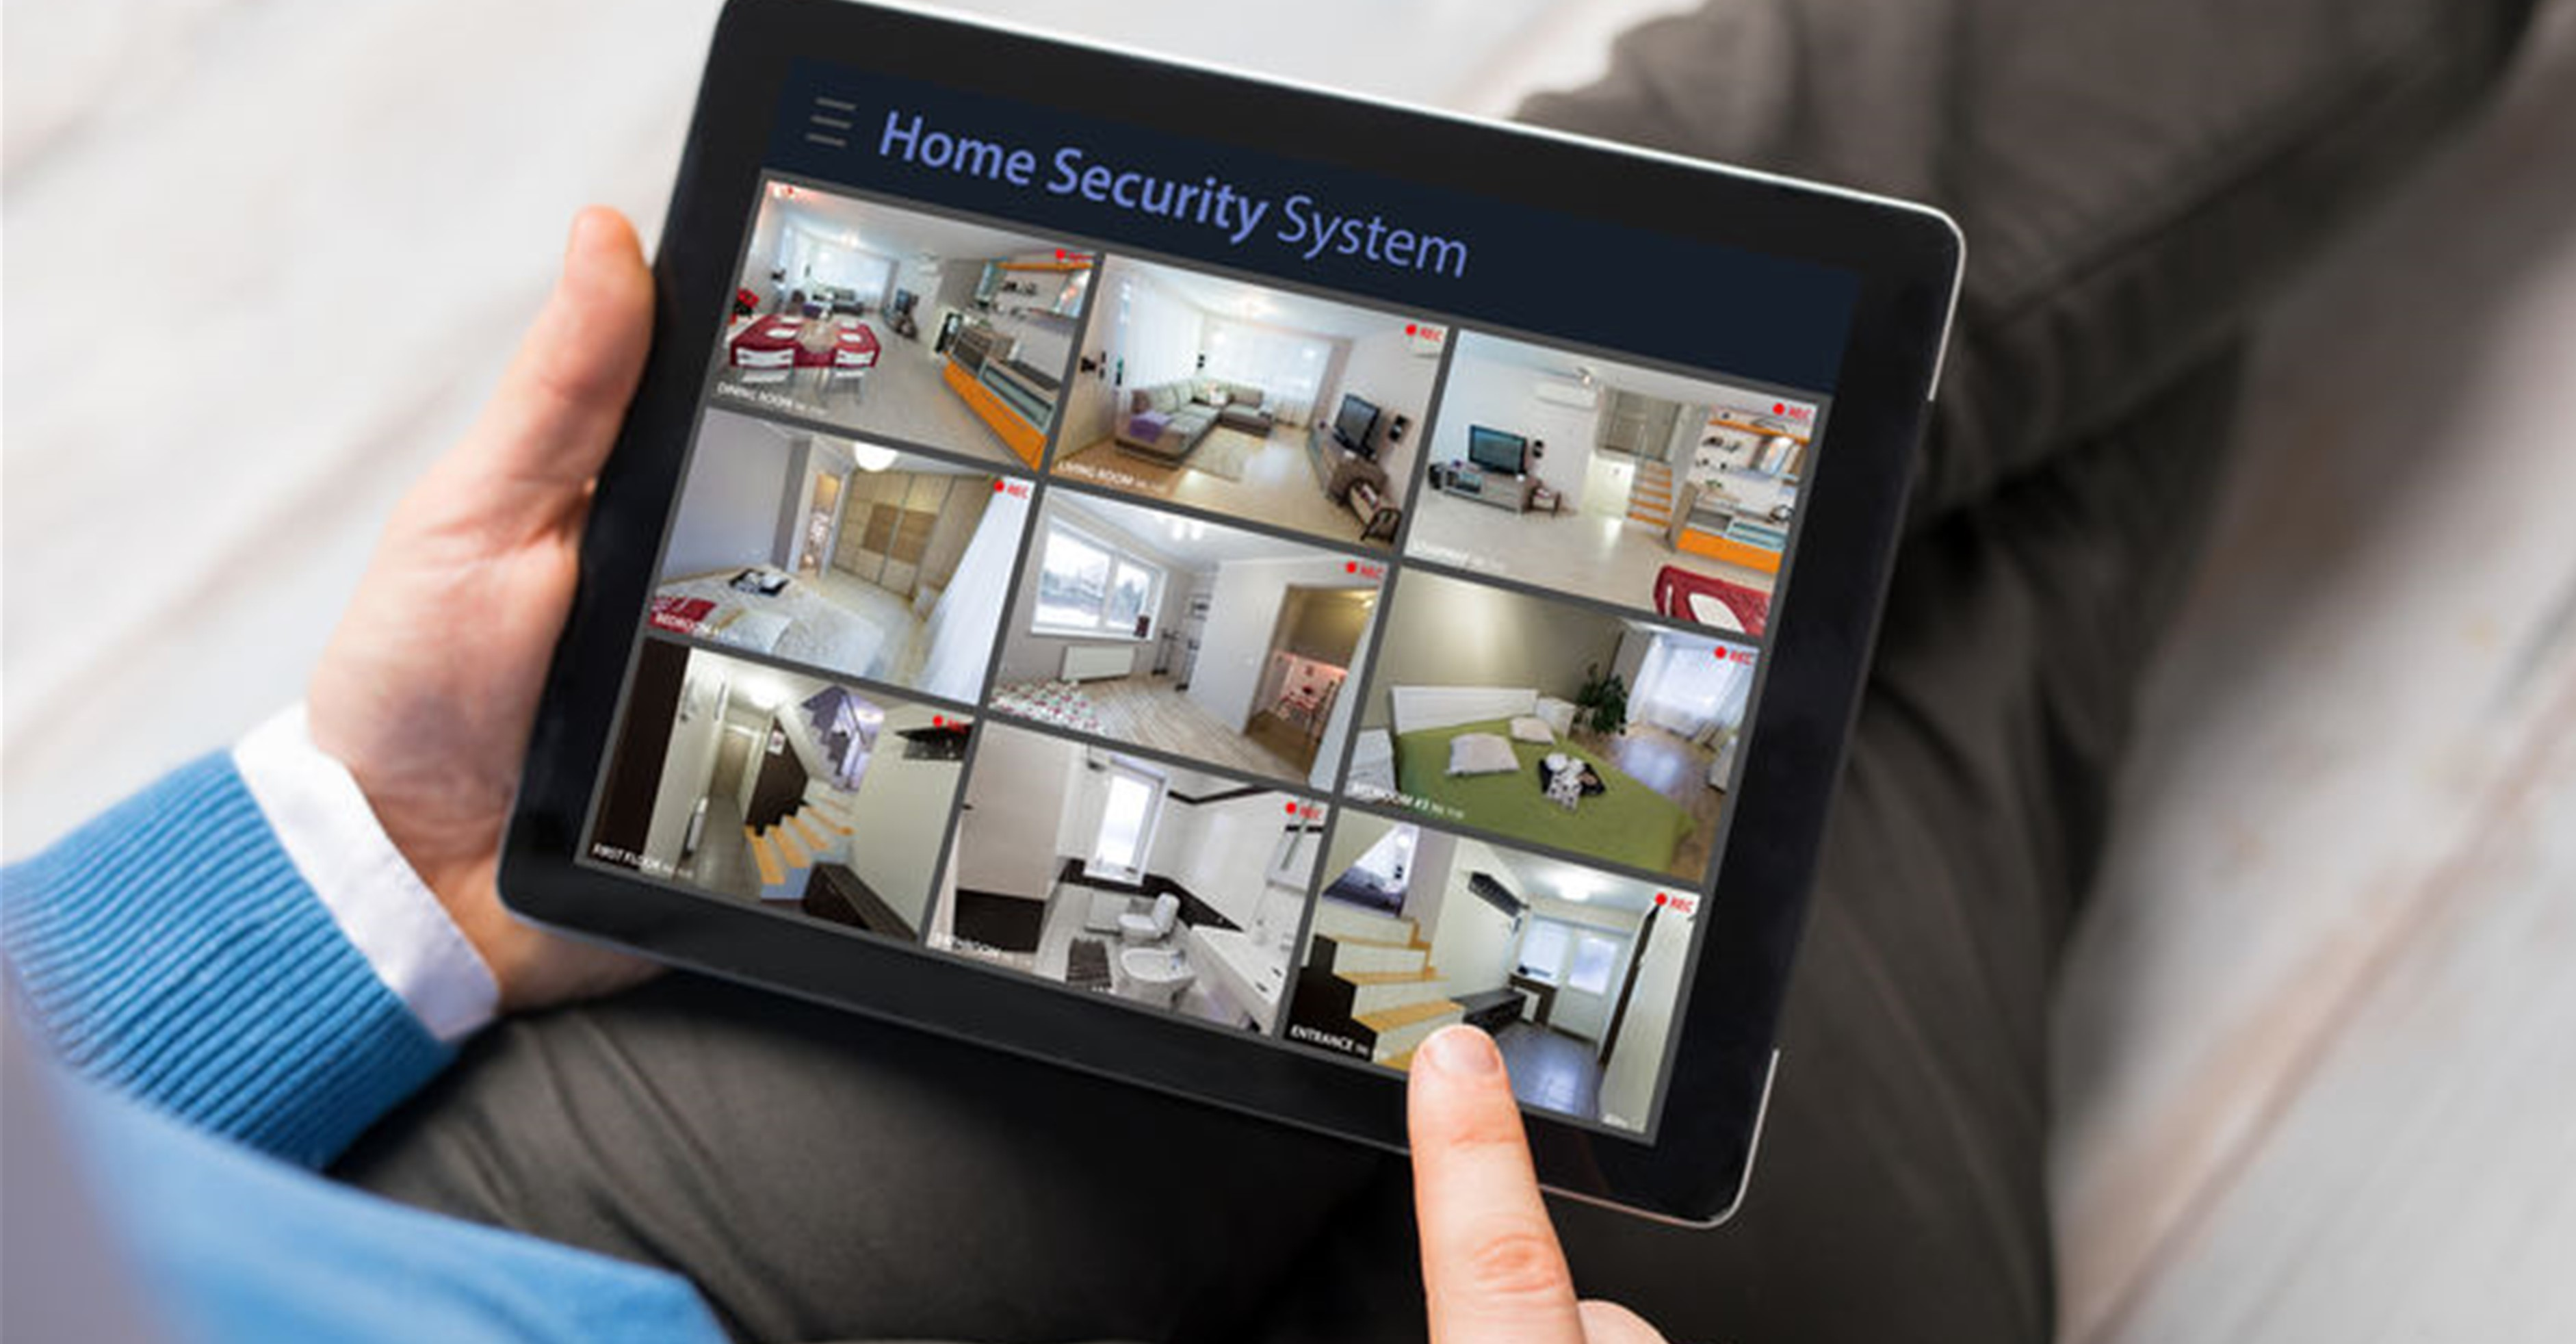 Protecting your Home Gadgets from Hacking